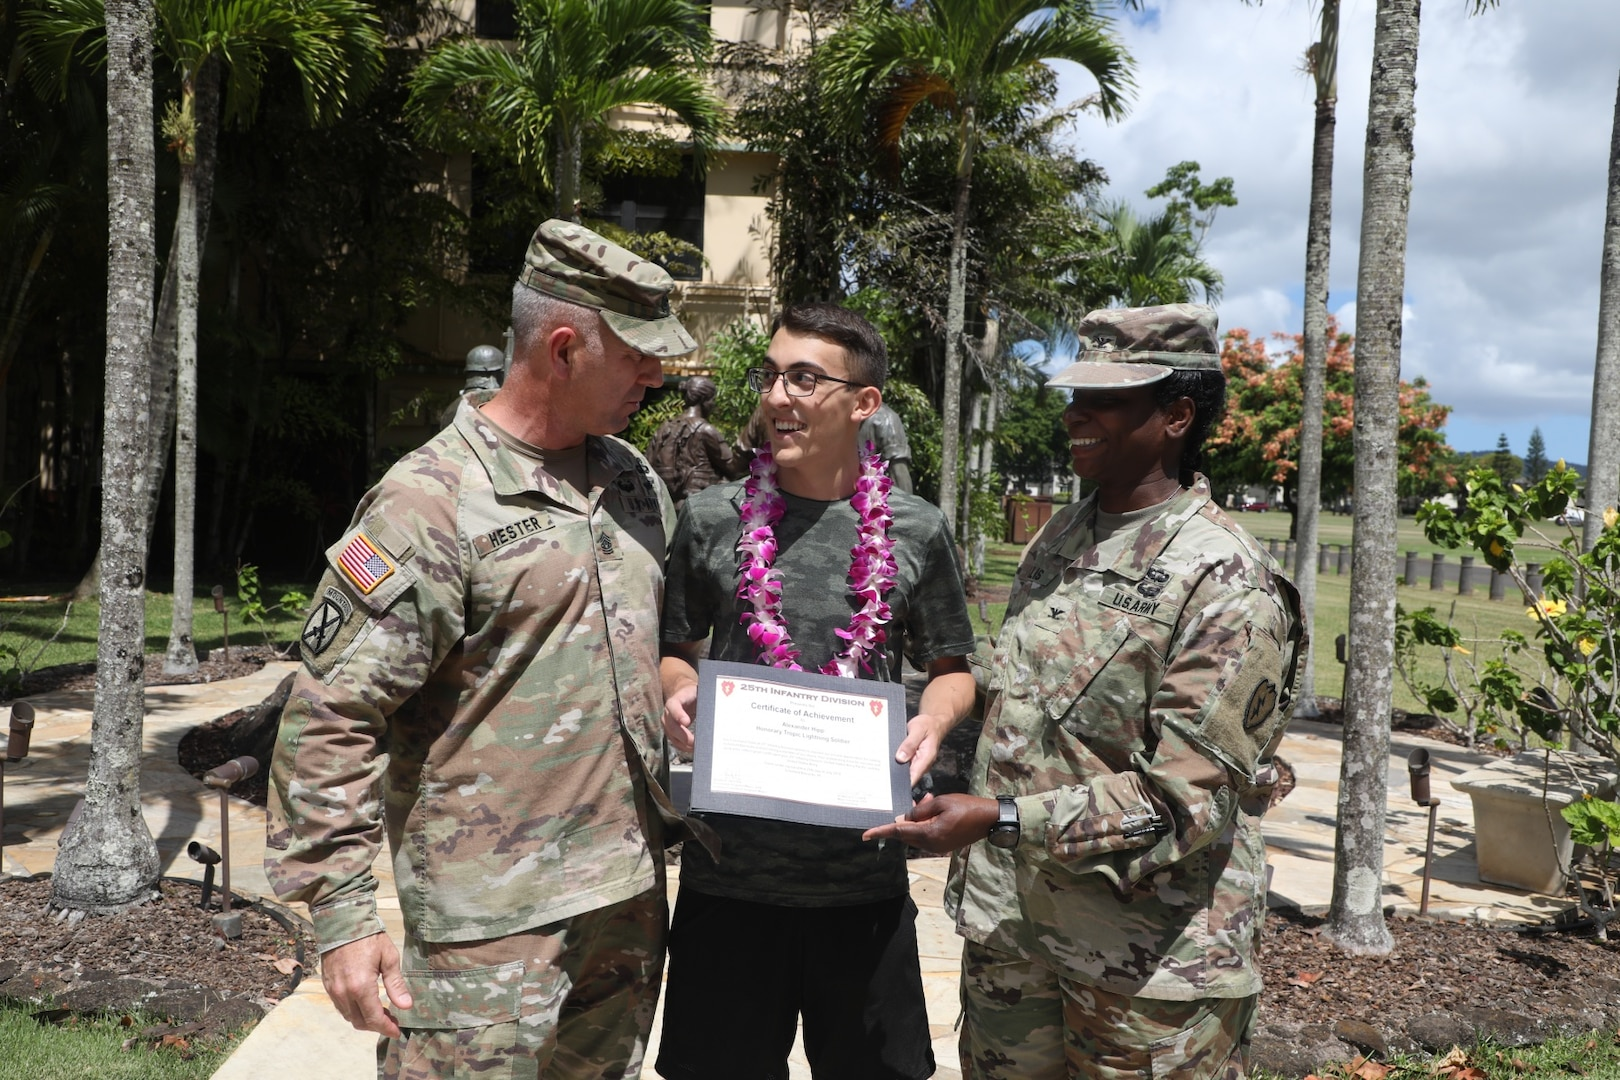 Soldiers Help Make Young Man's Wish Come True